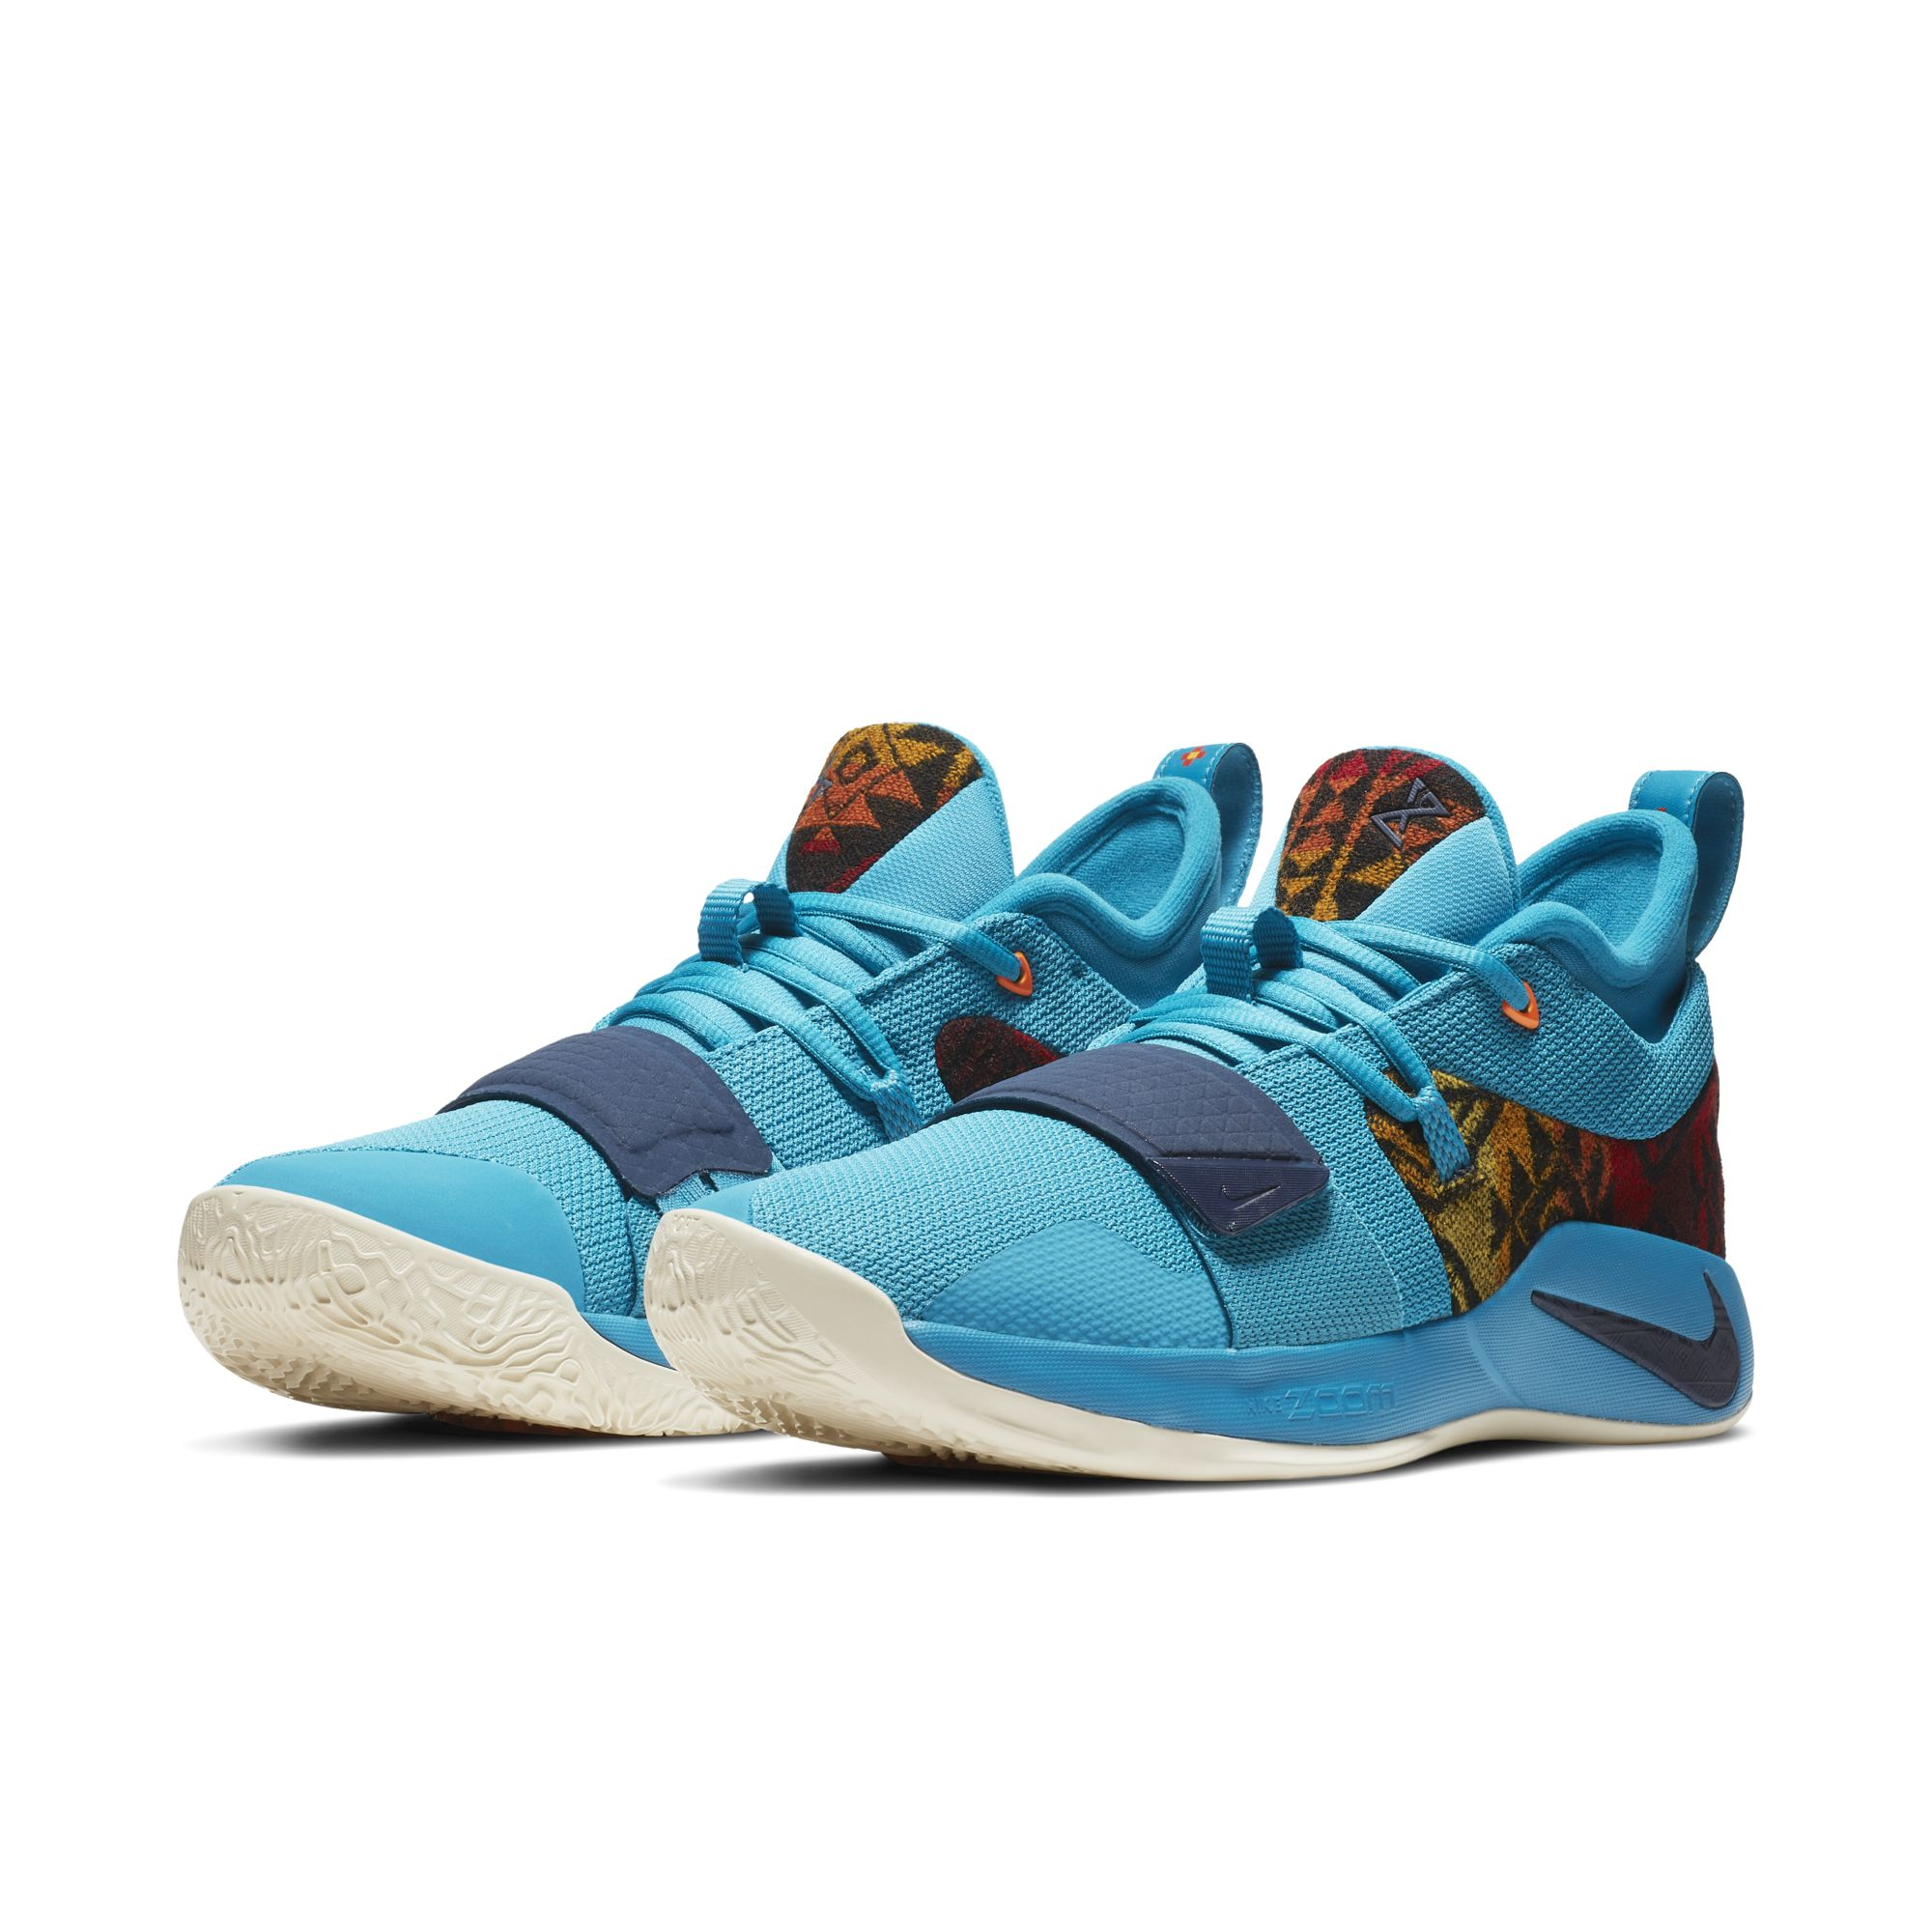 NIKE PG 2.5 PENDLETON MULTI- COLOR : COLLEGE NAVY 1